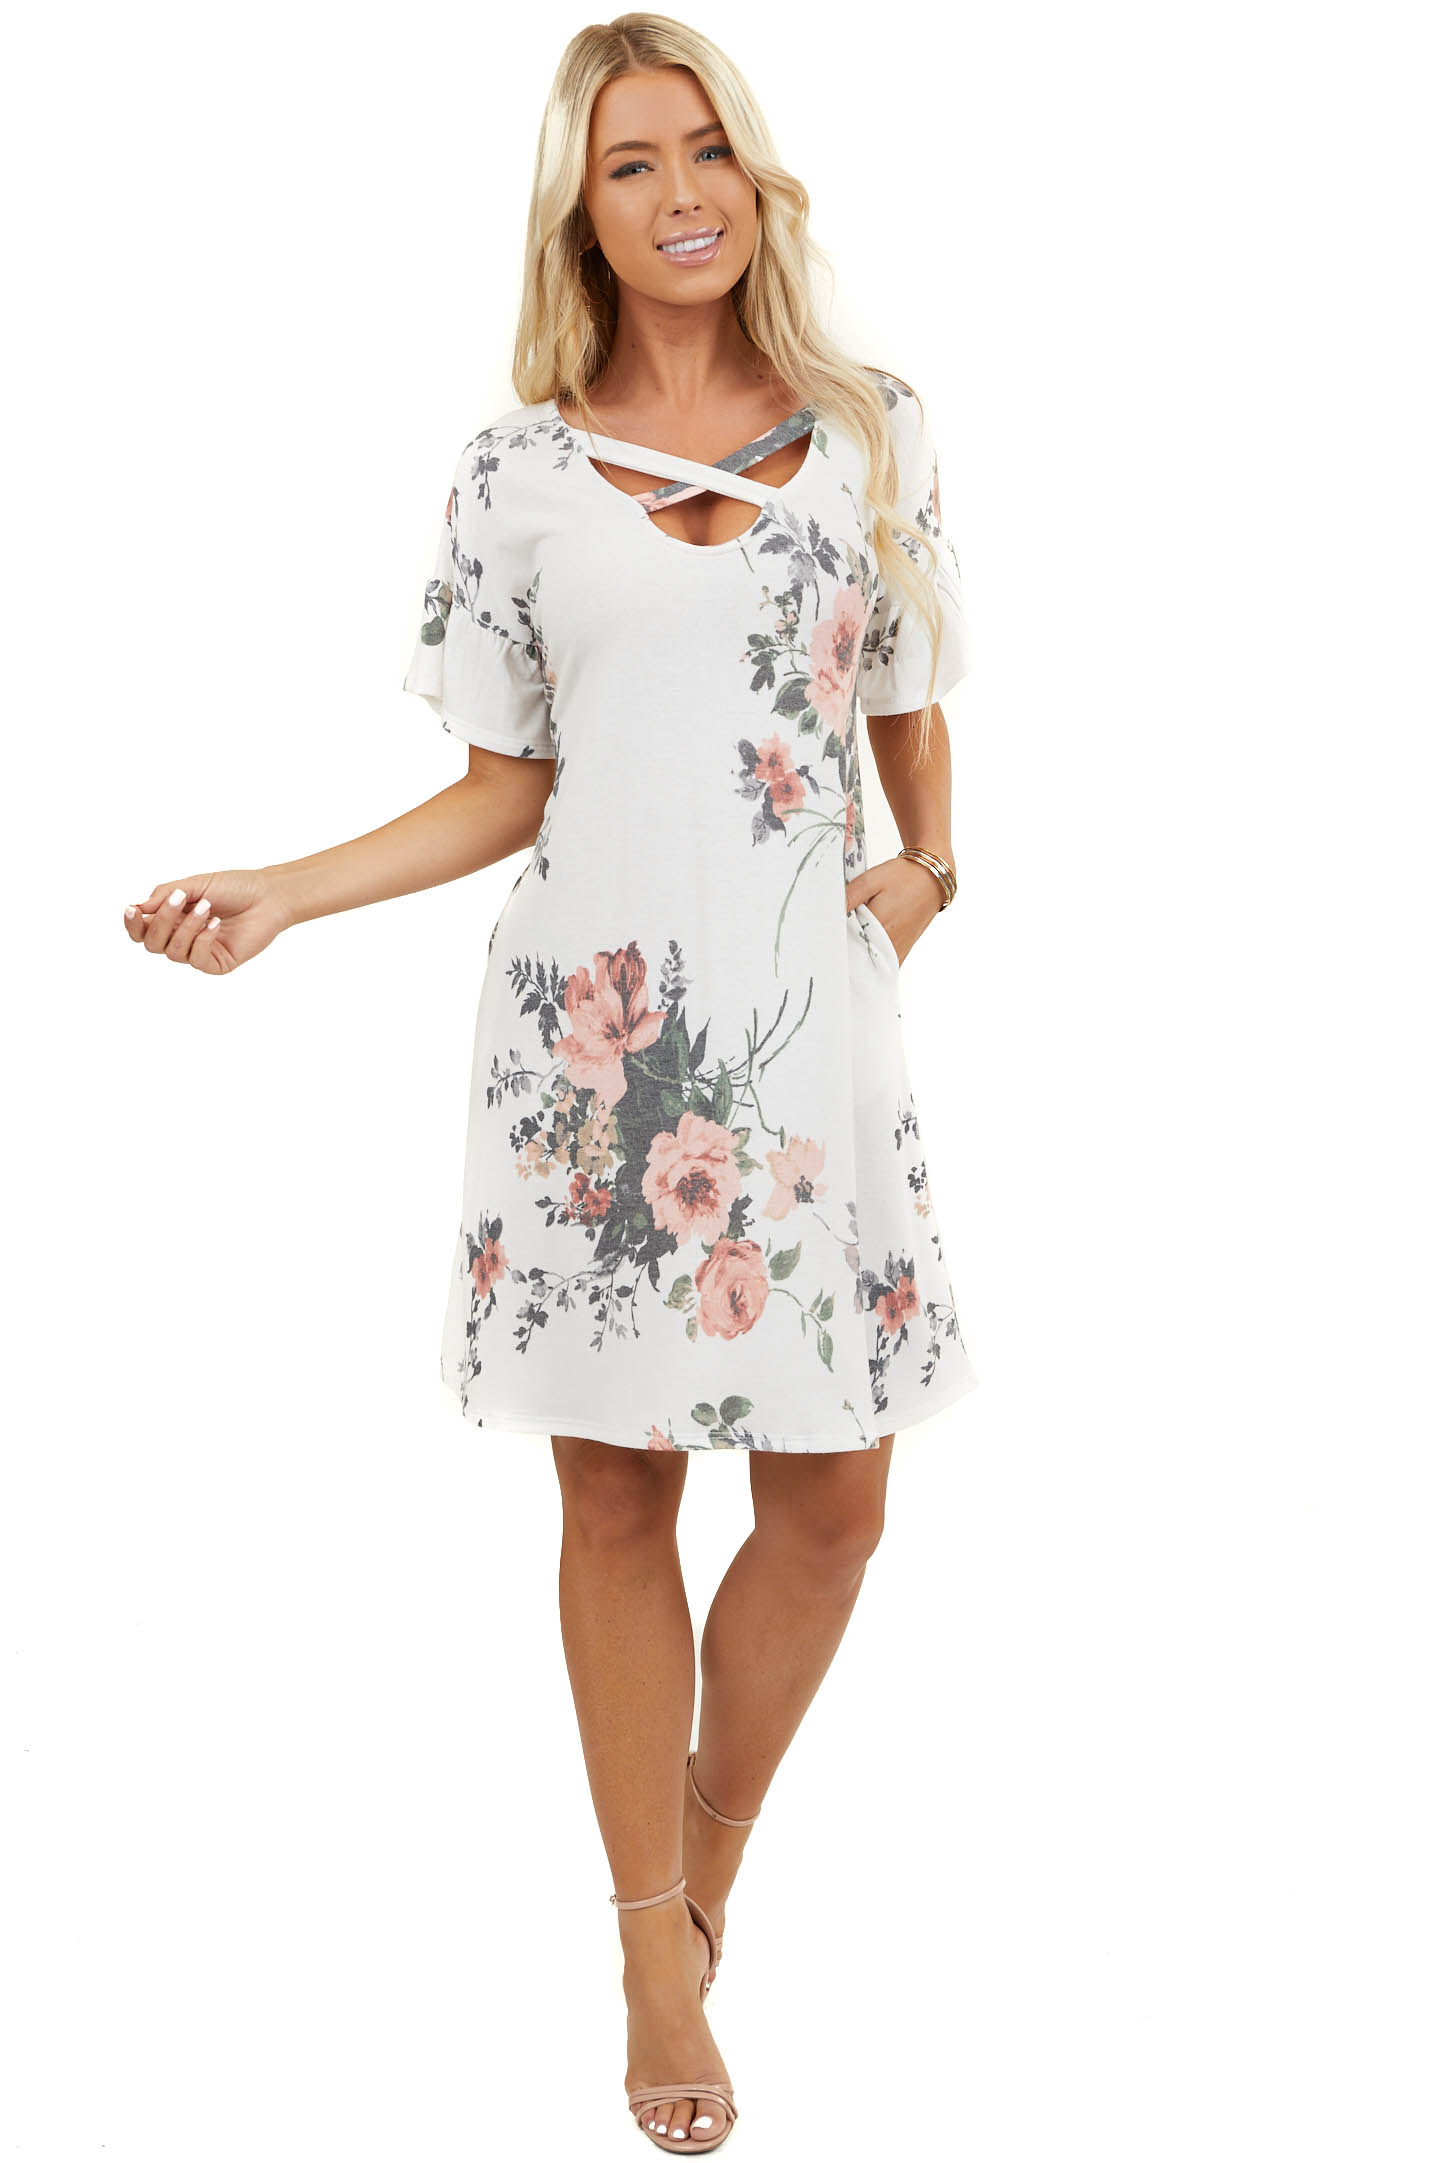 Ivory Floral Criss Cross Neckline Dress with Ruffled Sleeves